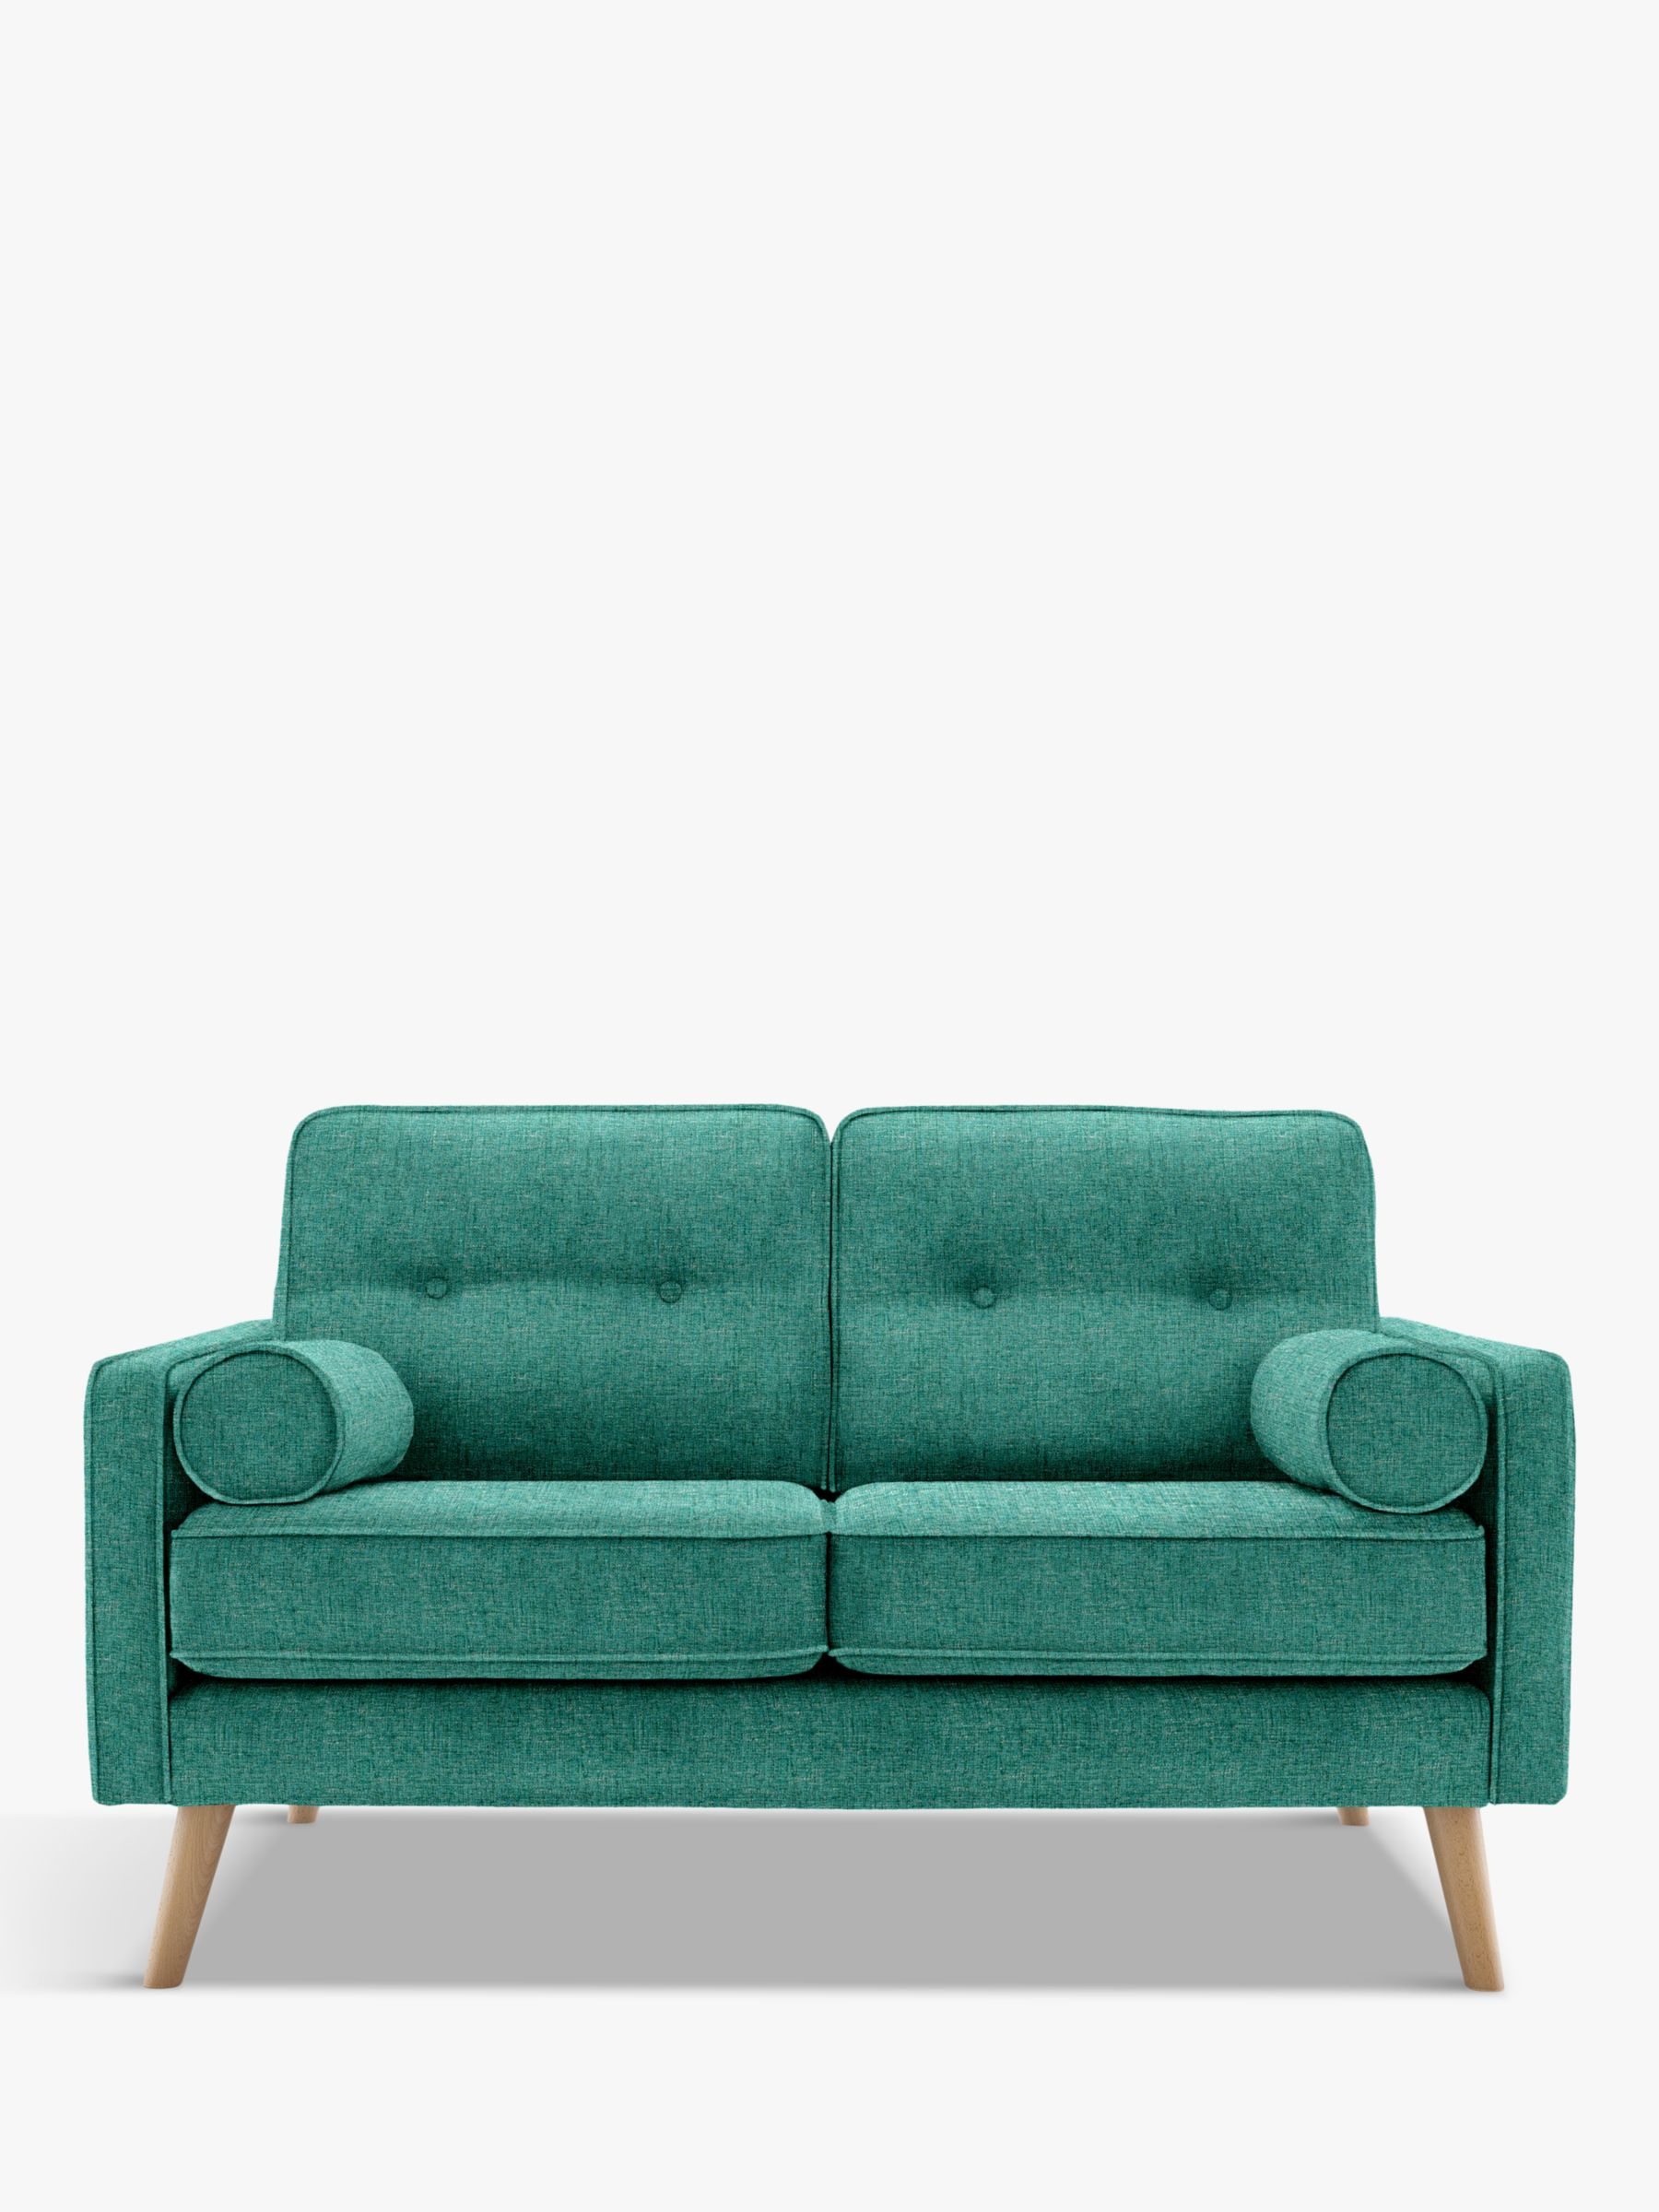 G Plan Vintage G Plan Vintage The Sixty Five Small 2 Seater Sofa